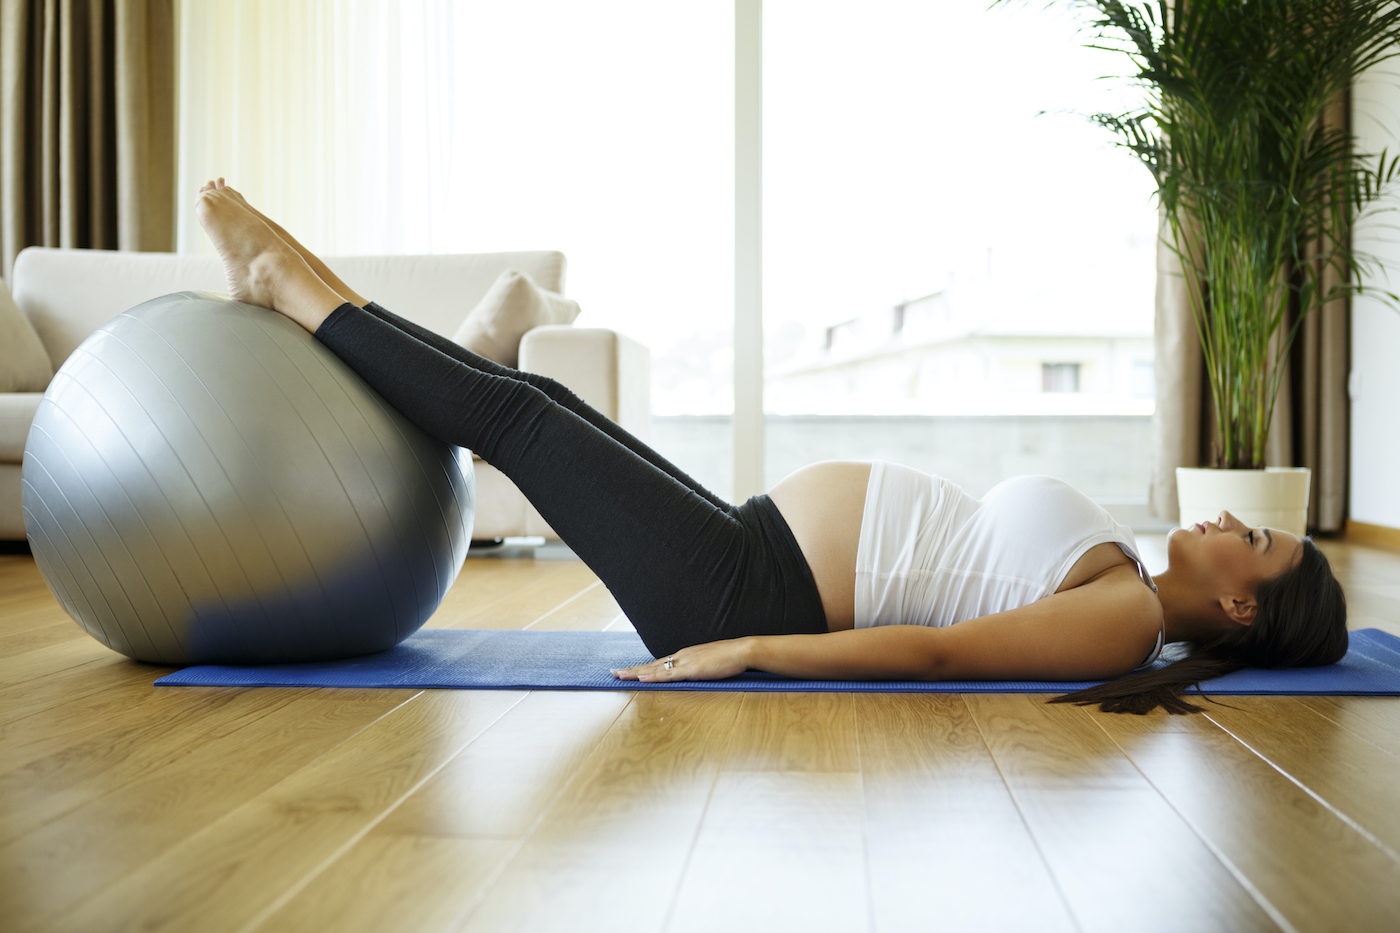 Thumbnail for 8 Prenatal Pilates Exercises to Practice From the Comfort of Your Own Home